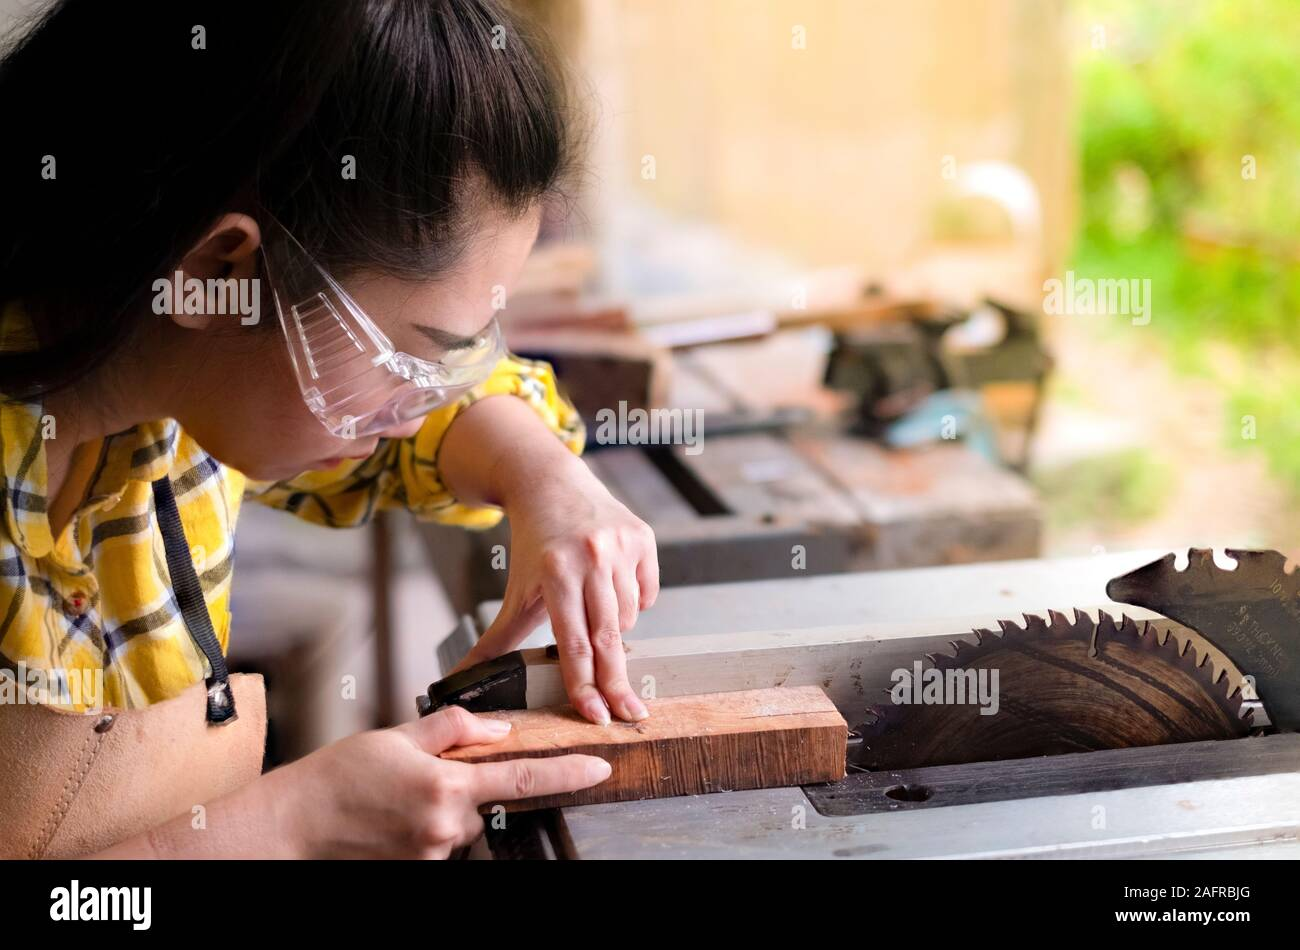 Women standing is craft working cut wood at a work bench with circular saws power tools at carpenter machine in the workshop Stock Photo